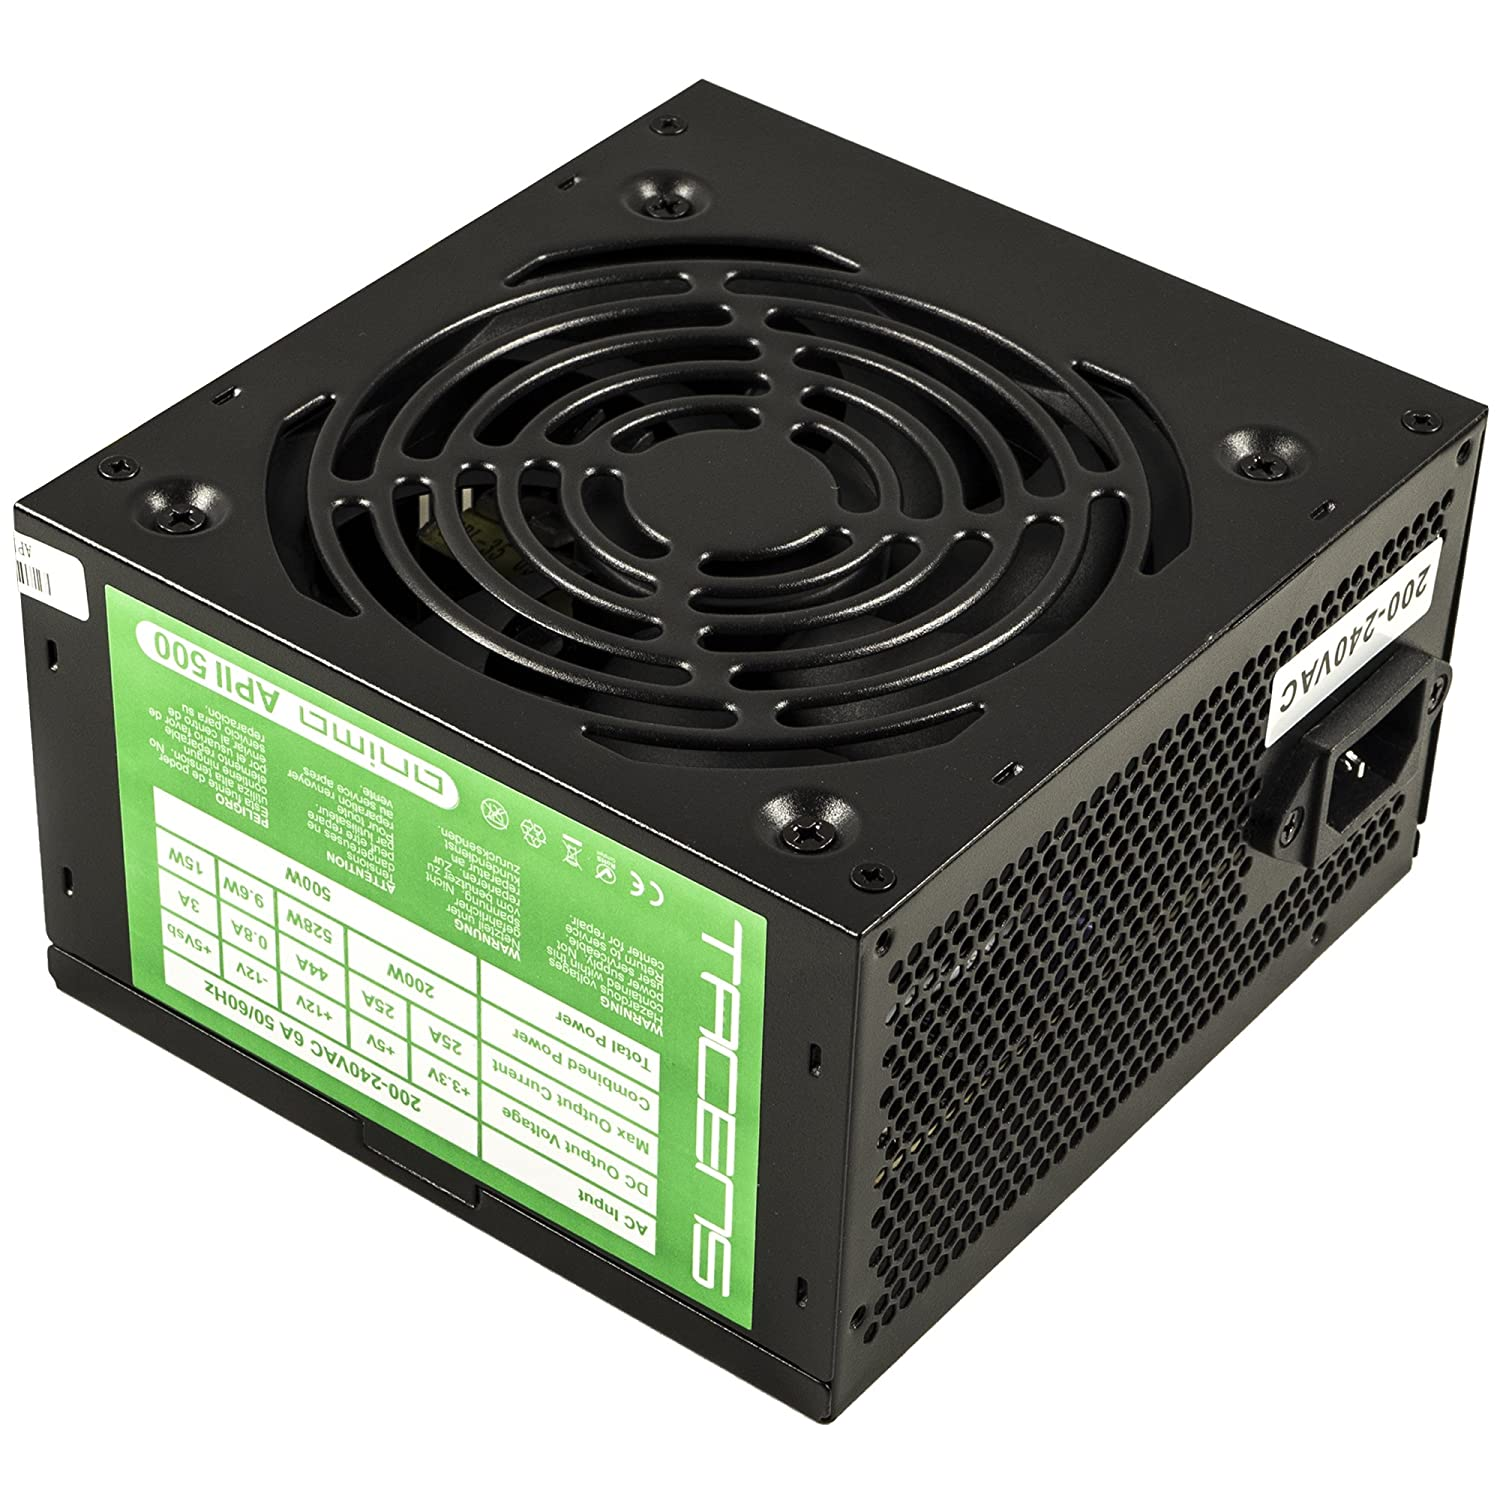 comprar pc gamer barato fuente tacens 500w para fortnite